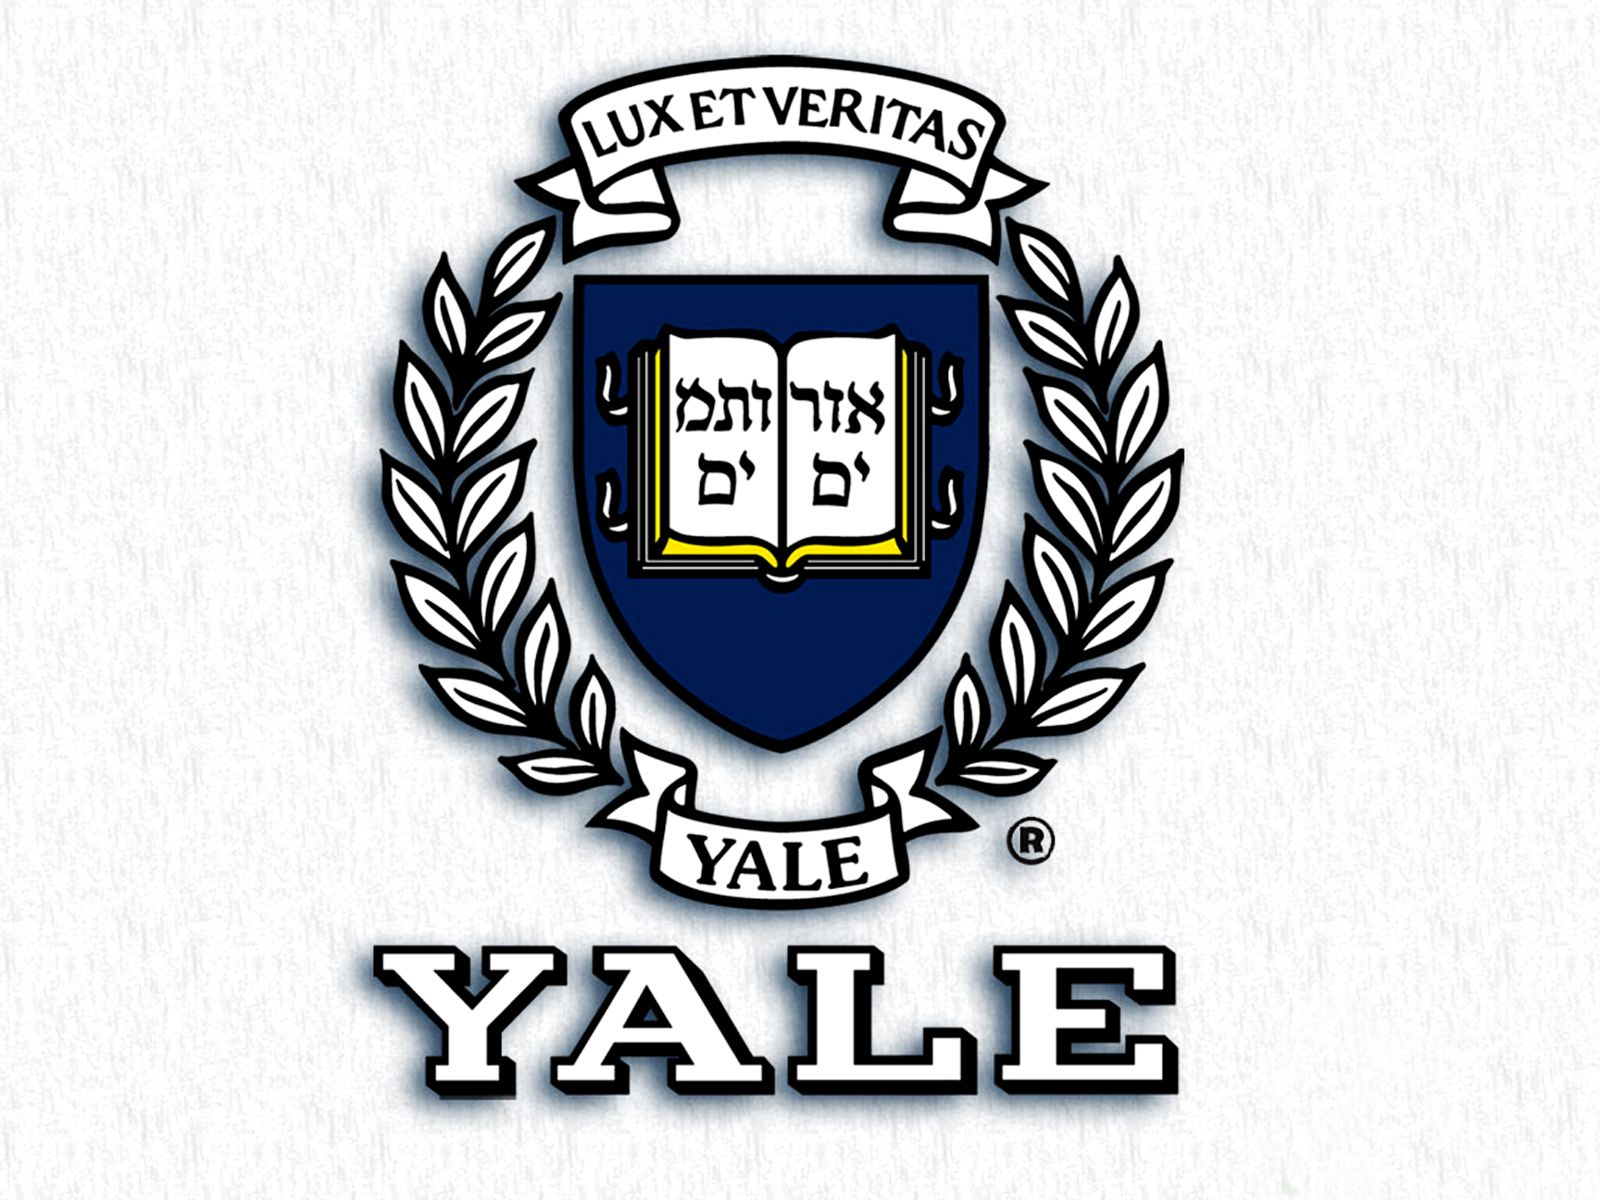 Yale Desktop Wallpapers   Top Yale Desktop Backgrounds 1600x1200